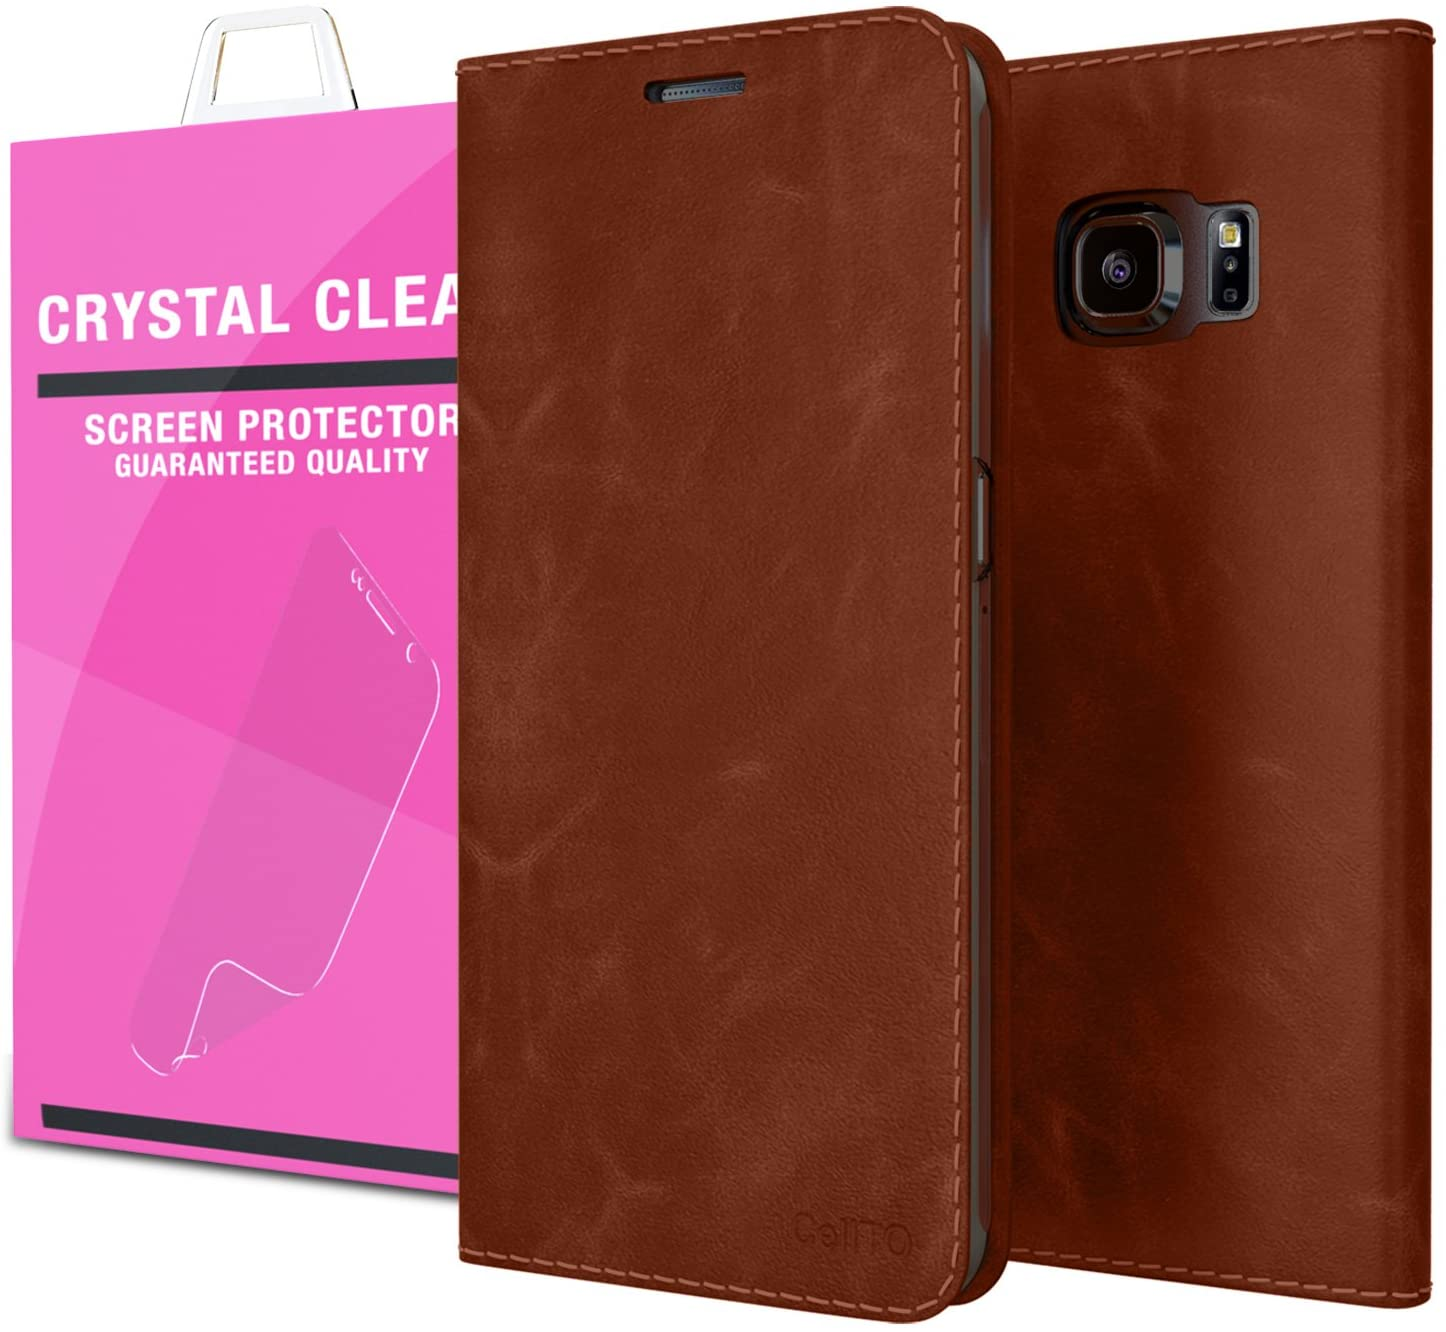 Galaxy S6 Edge Case - Cellto [GLux] PU Leather Wallet Type Diary Cover w/Card Slots - Brown